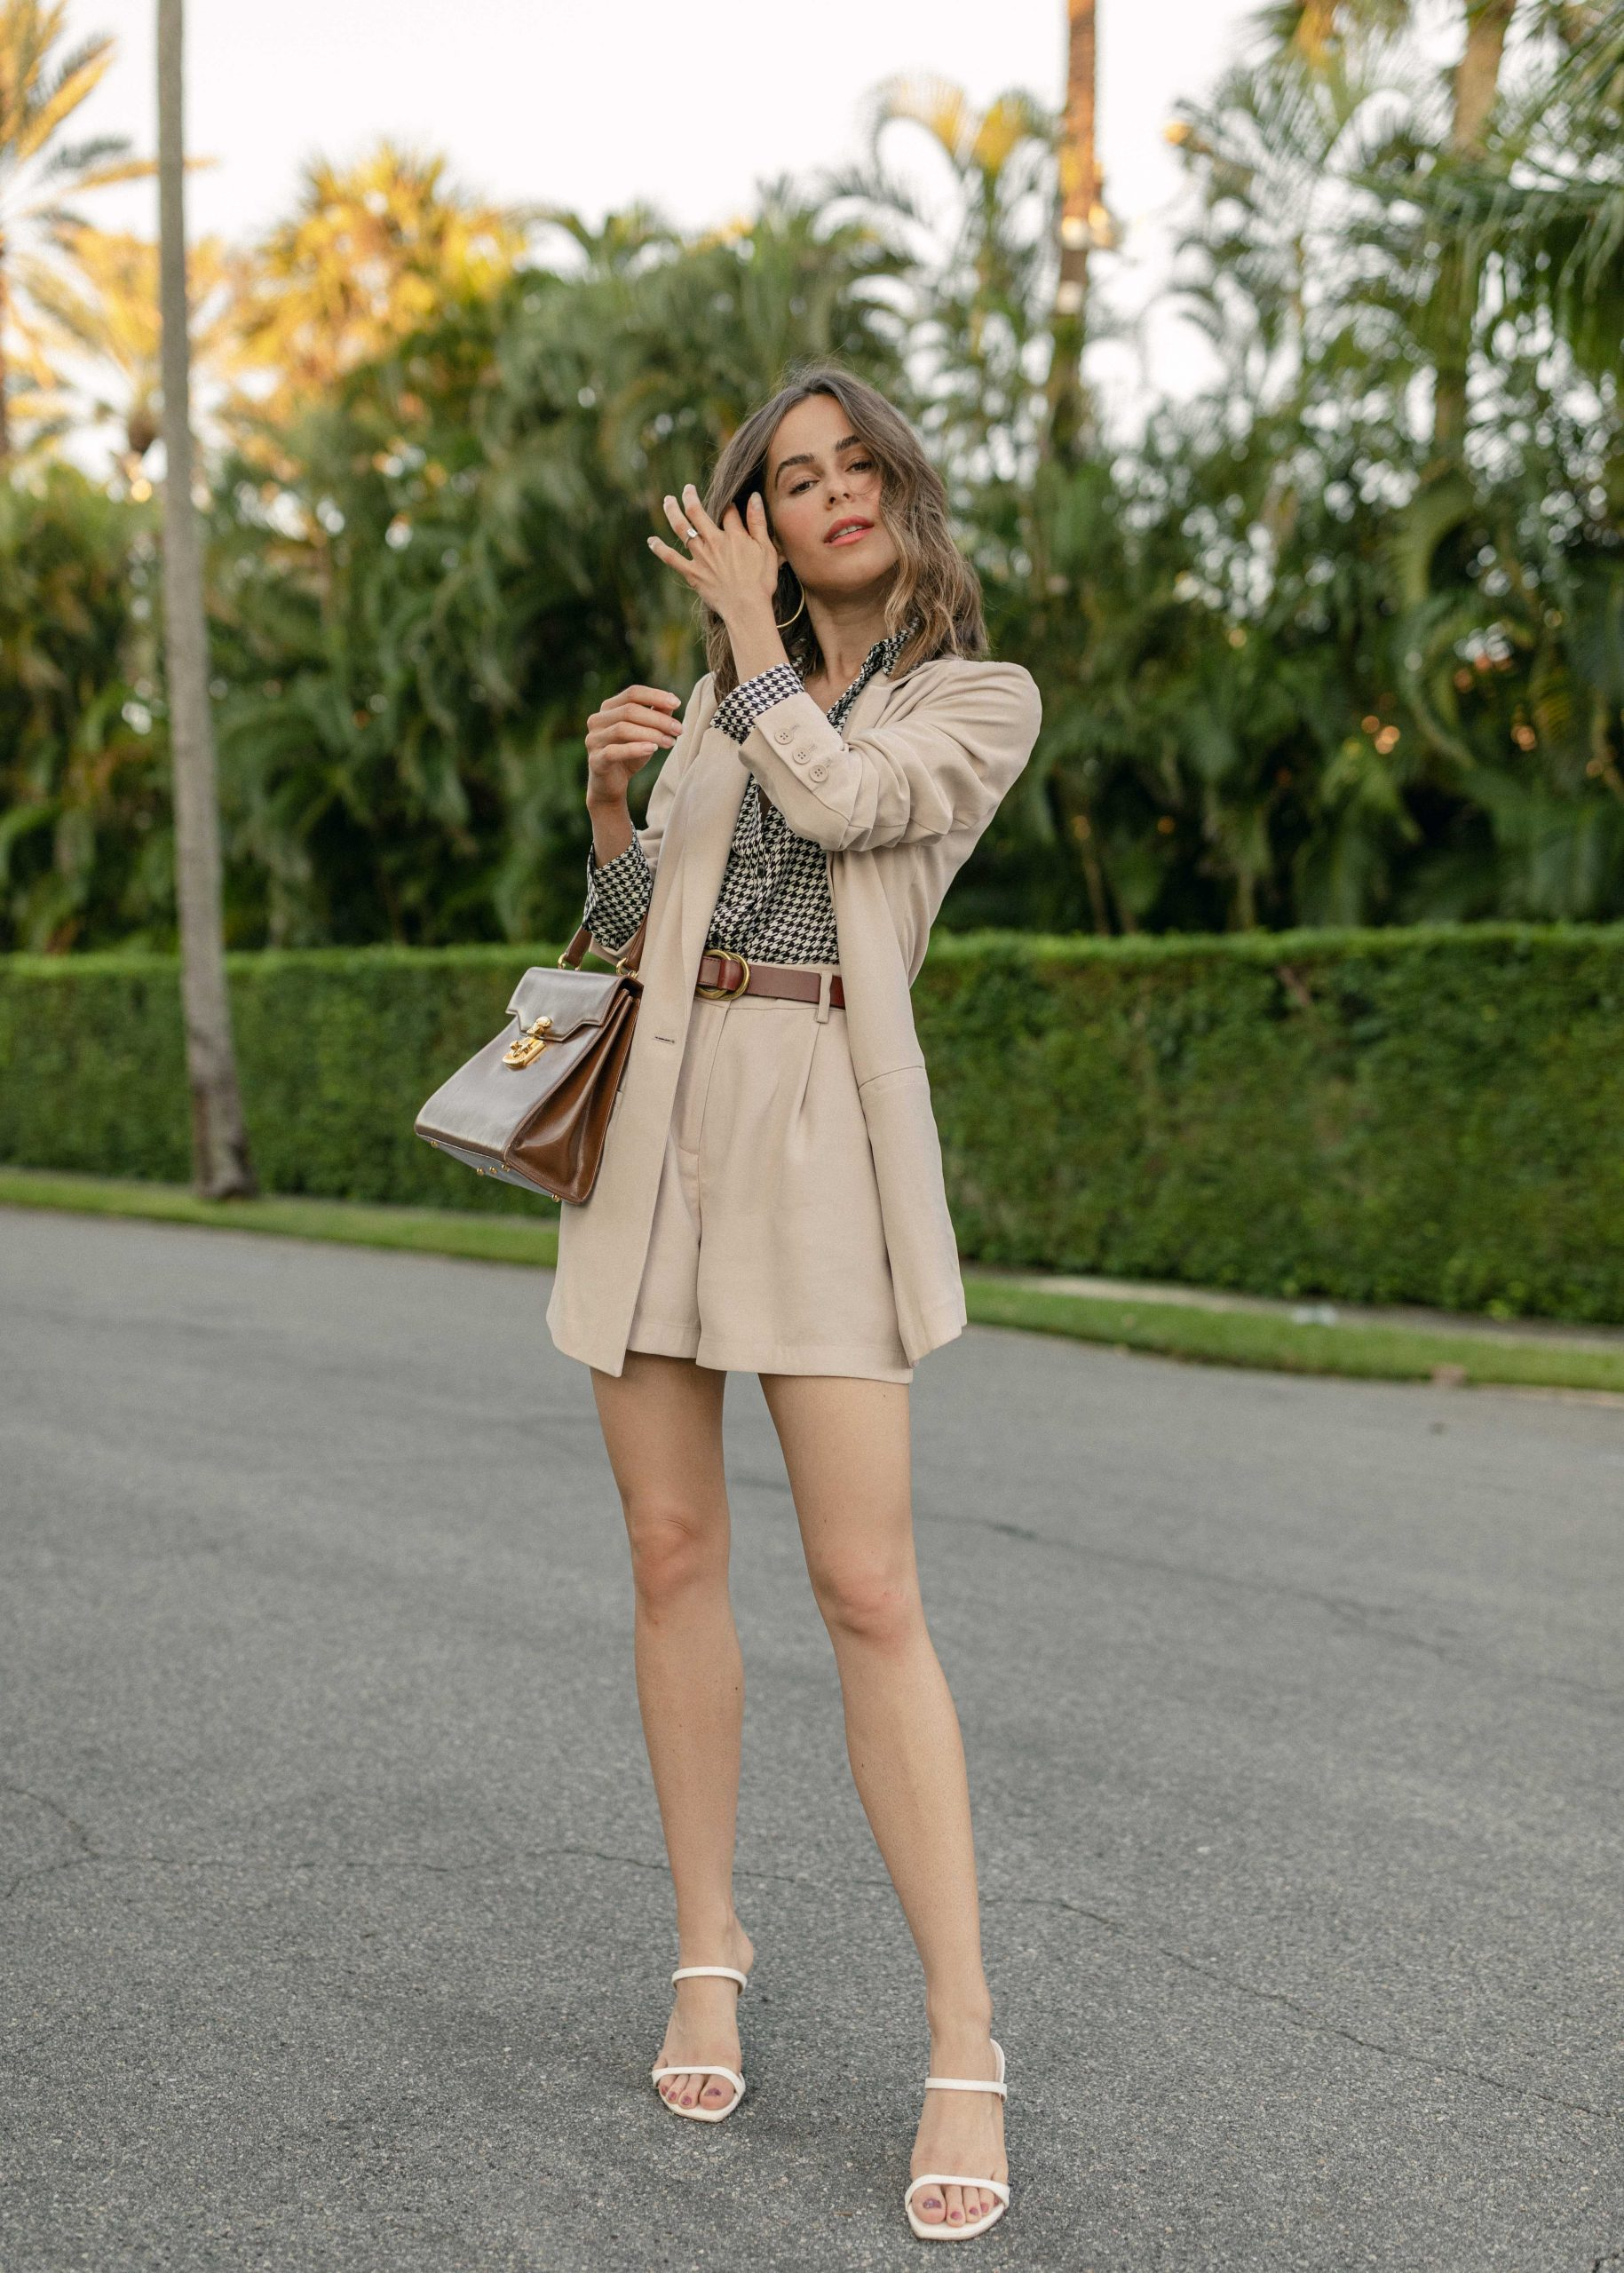 Featuring Fall Layering in Florida by Stephanie Hill on The Style Bungalow